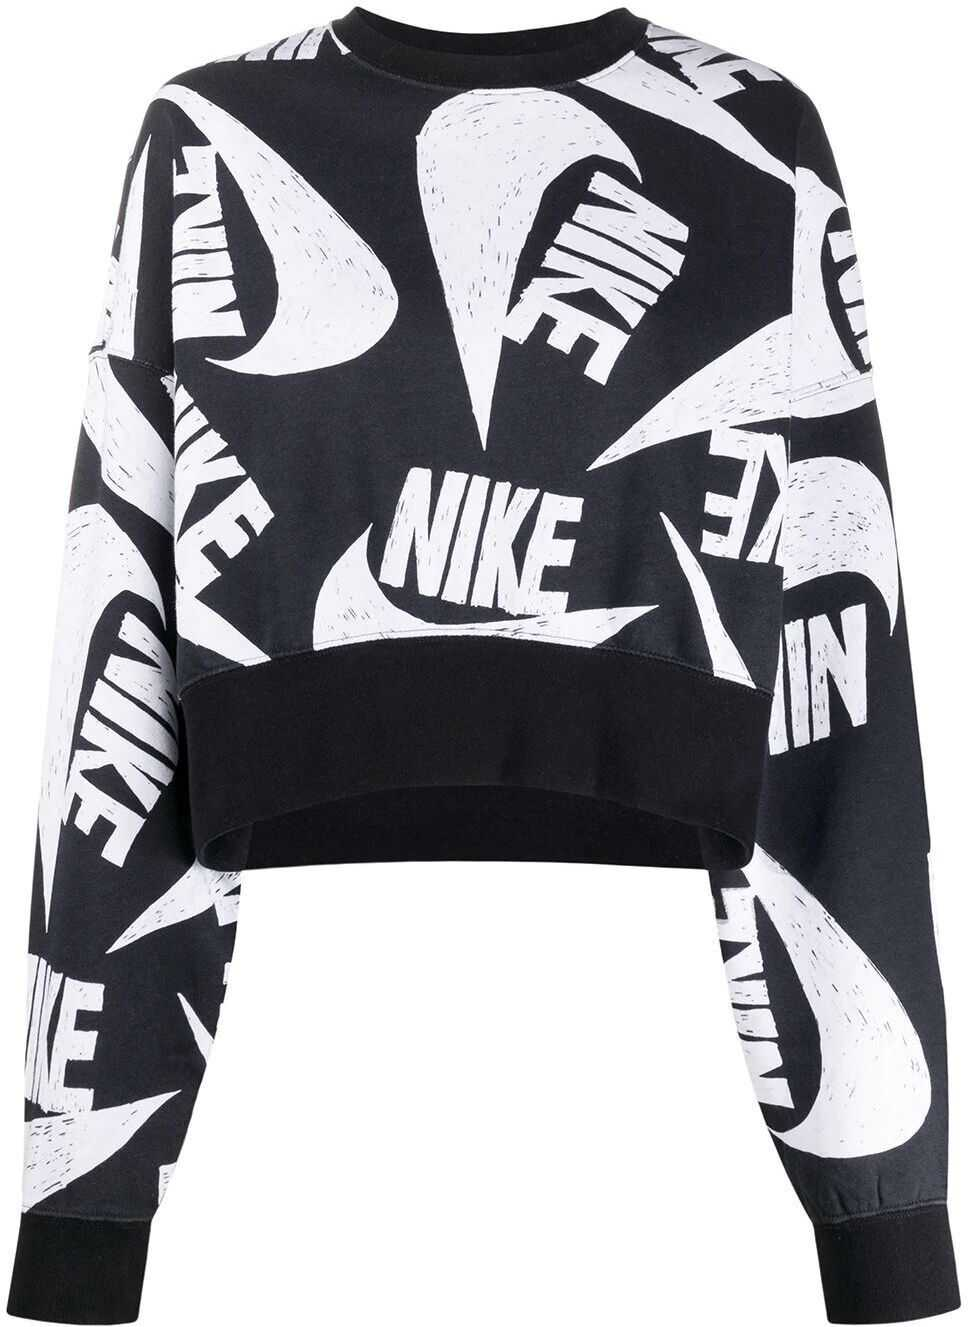 Nike Cotton Sweatshirt BLACK